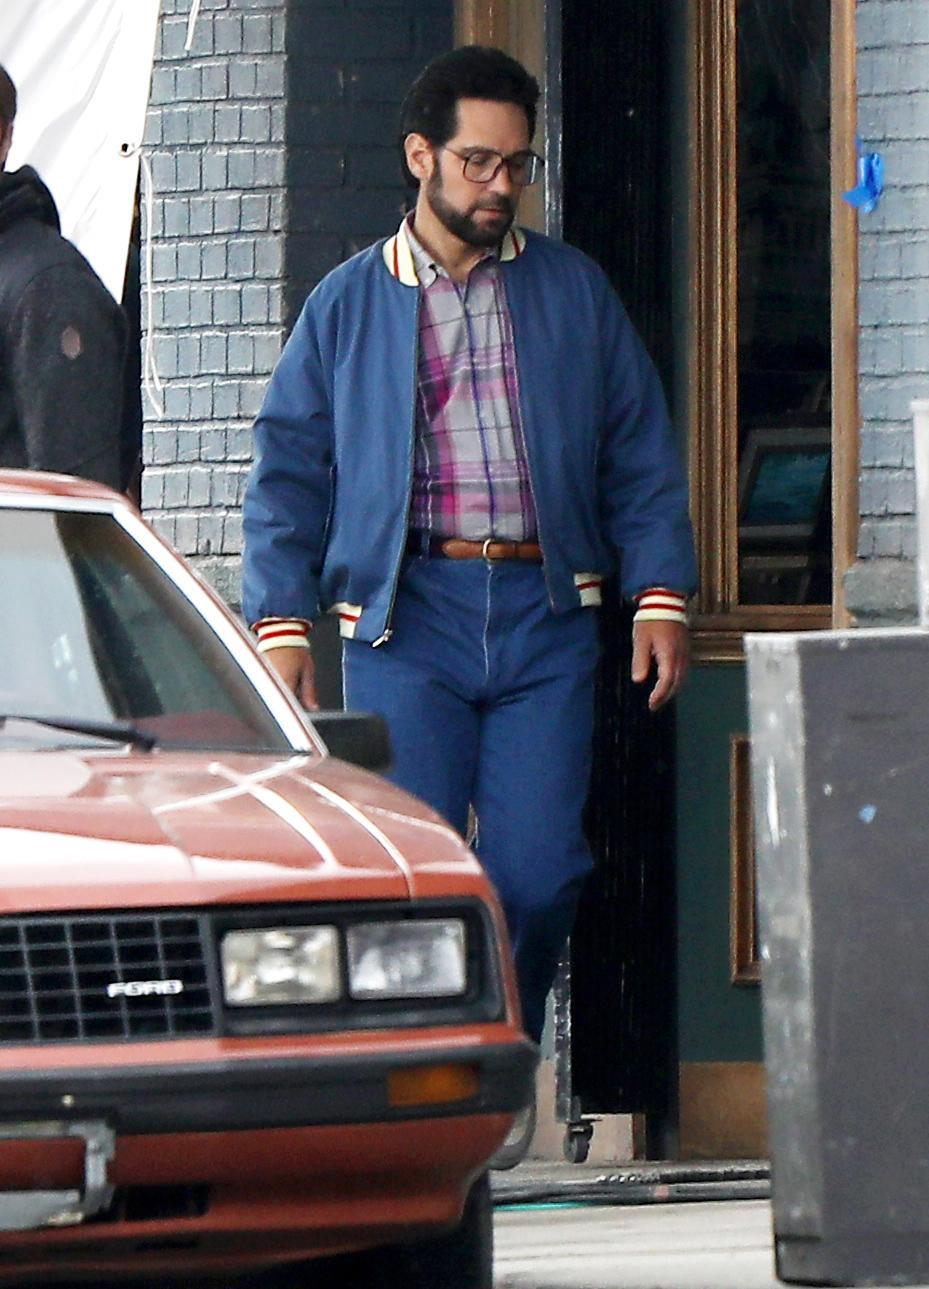 <p>On Monday, an almost unrecognizable Paul Rudd films <em>The Shrink Next Door</em> in Los Angeles.</p>